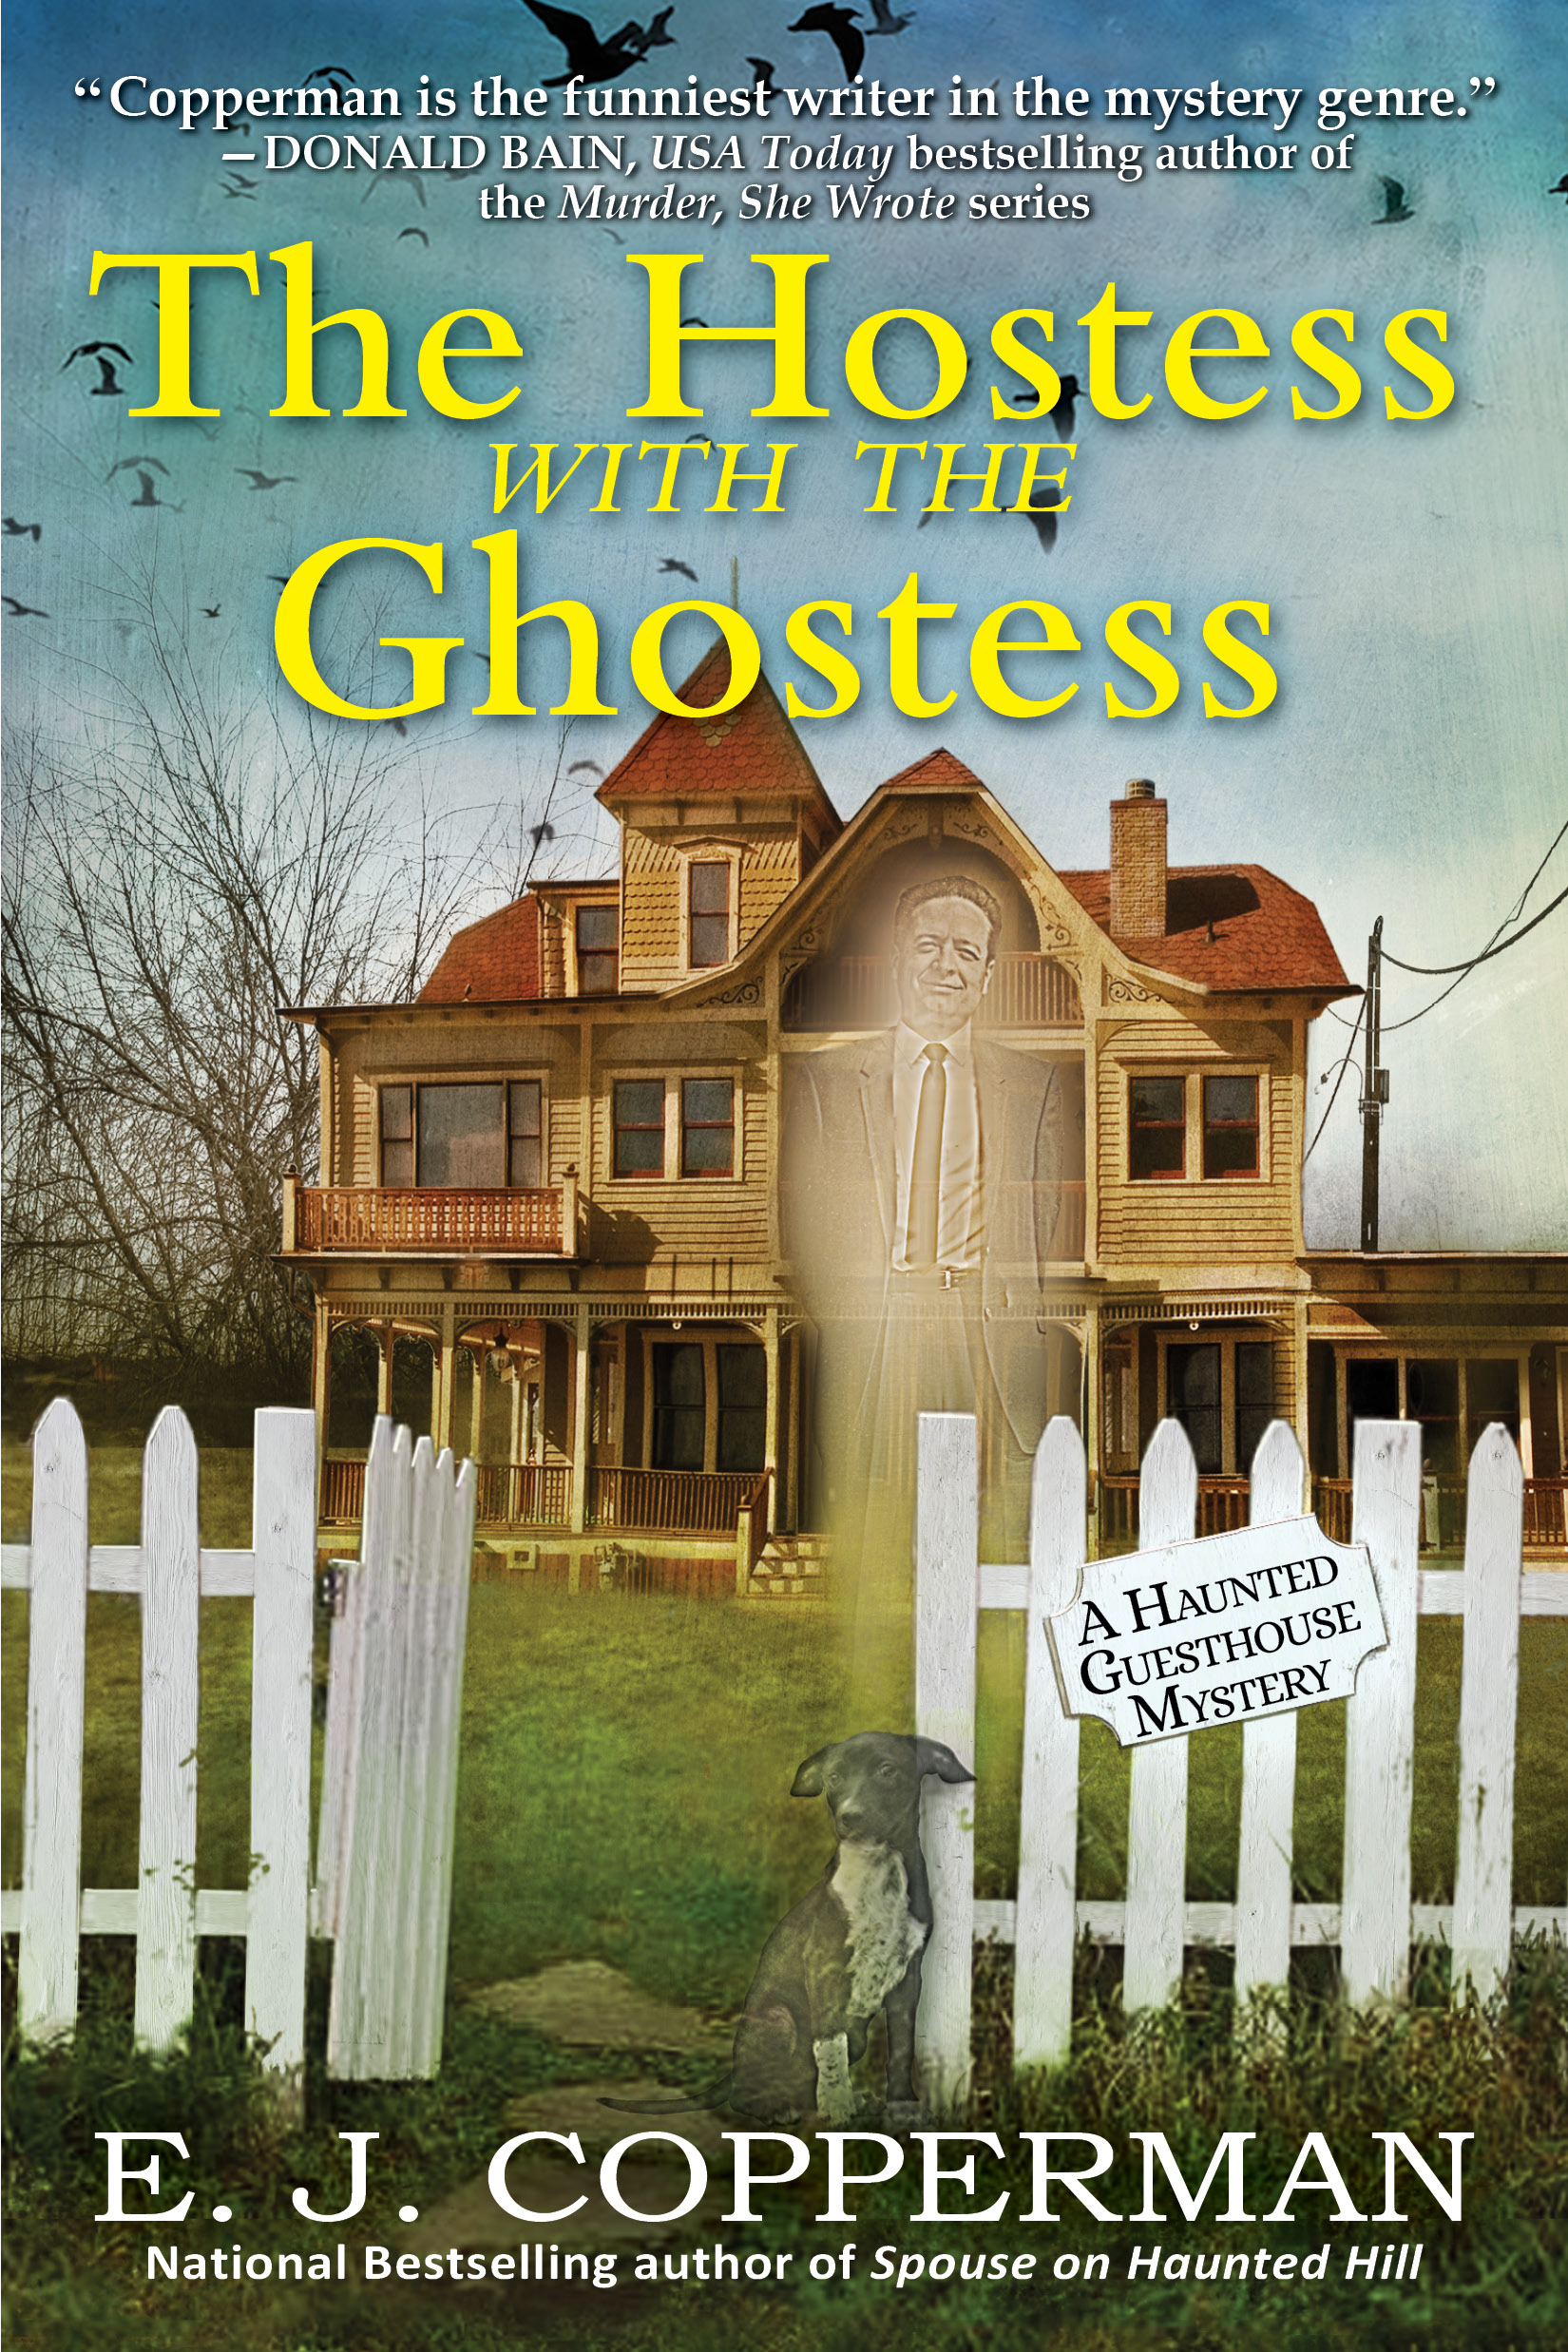 Haunted Guesthouse Series E J Copperman